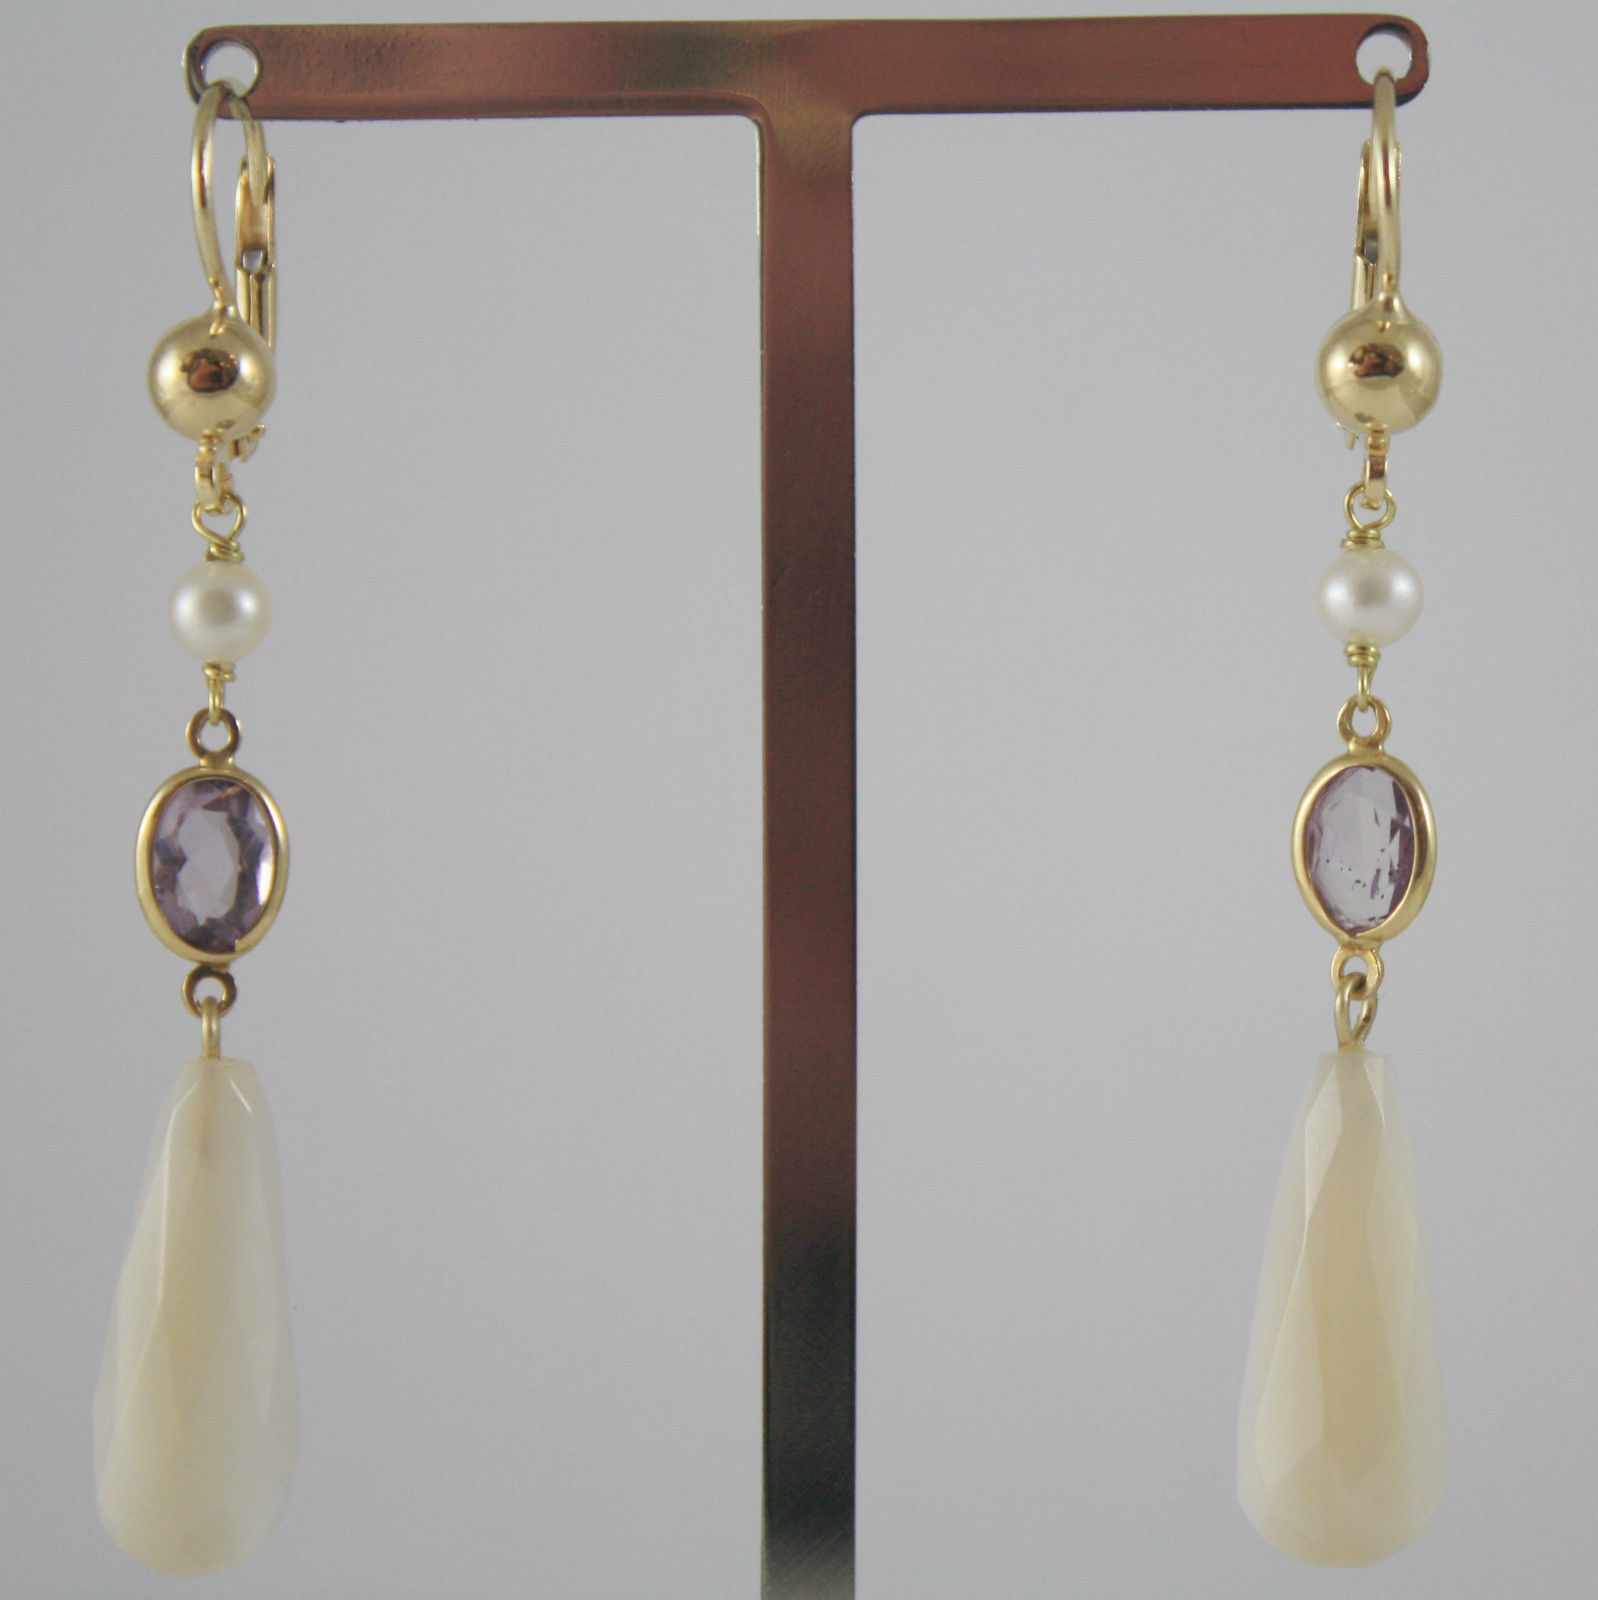 SOLID 18K YELLOW GOLD EARRINGS, PURPLE TOURMALINE, MOTHER PEARL, MADE IN ITALY